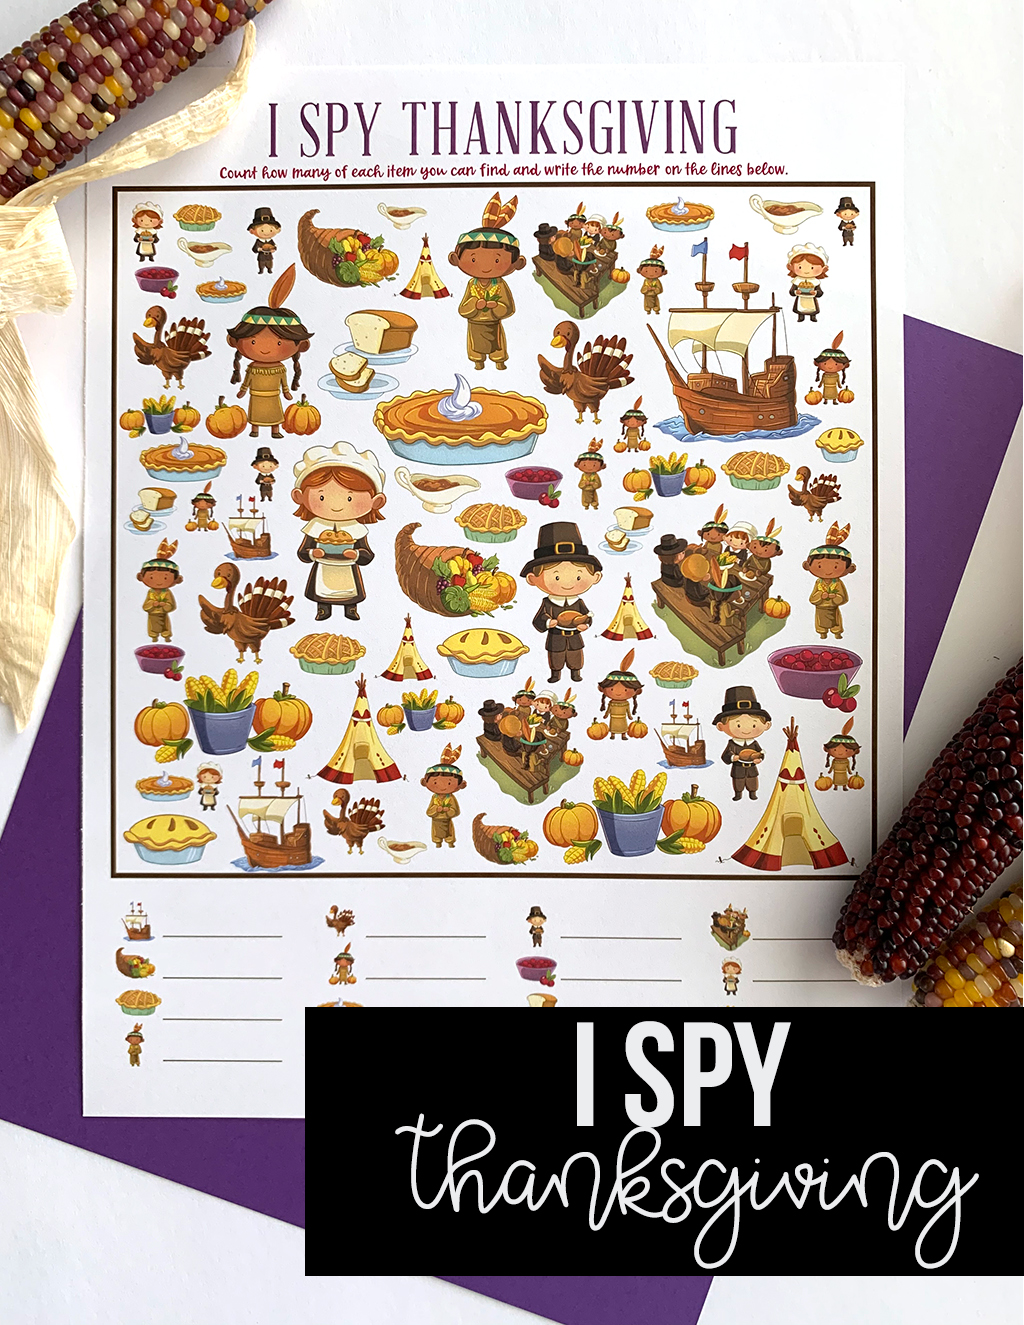 Free Printable I-Spy Thanksgiving Game with Indian corn and purple paper background.